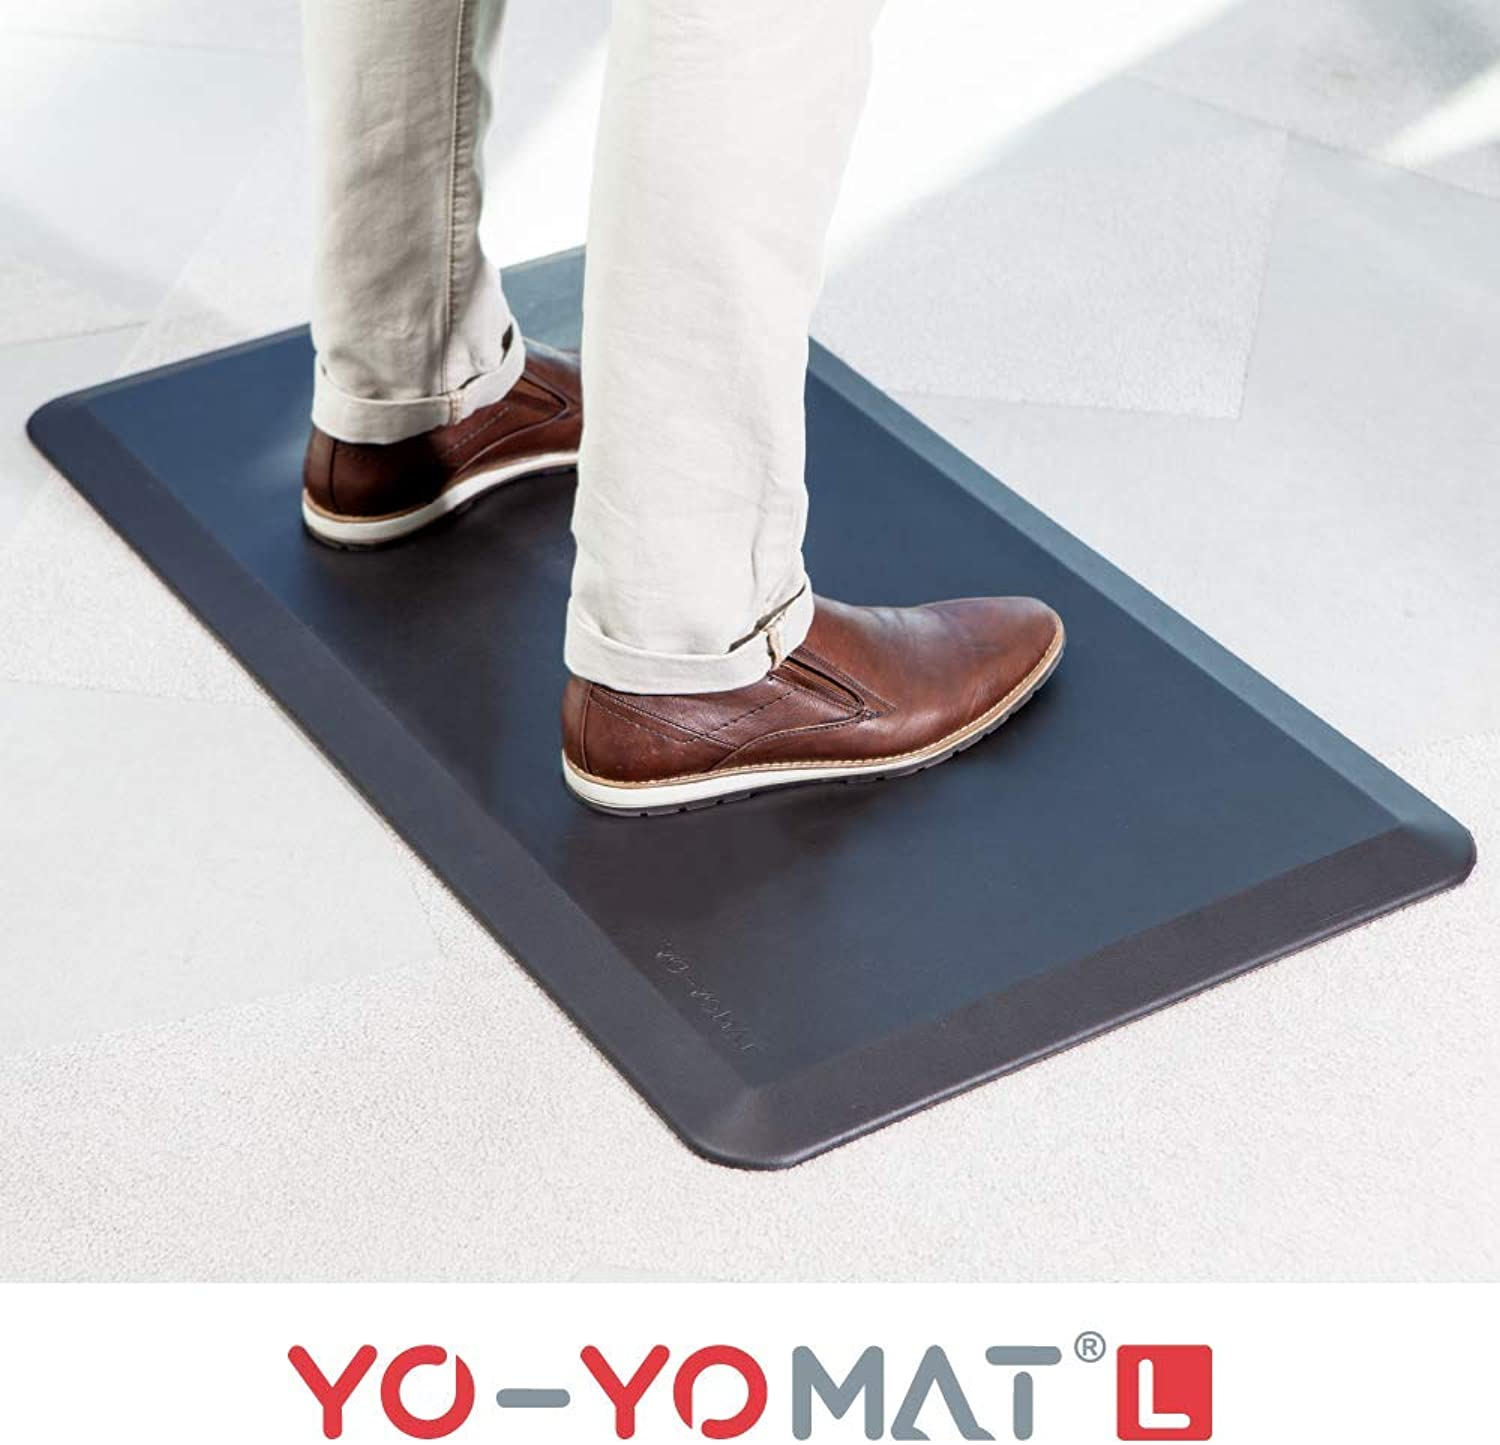 "Yo-Yo MAT - Standing Desk Anti-Fatigue Mat (BLACK).""Perfect for any Standing Desk, work stations, Height Adjustable Desk or Kitchen"" (BLACK, 36 x20 )"